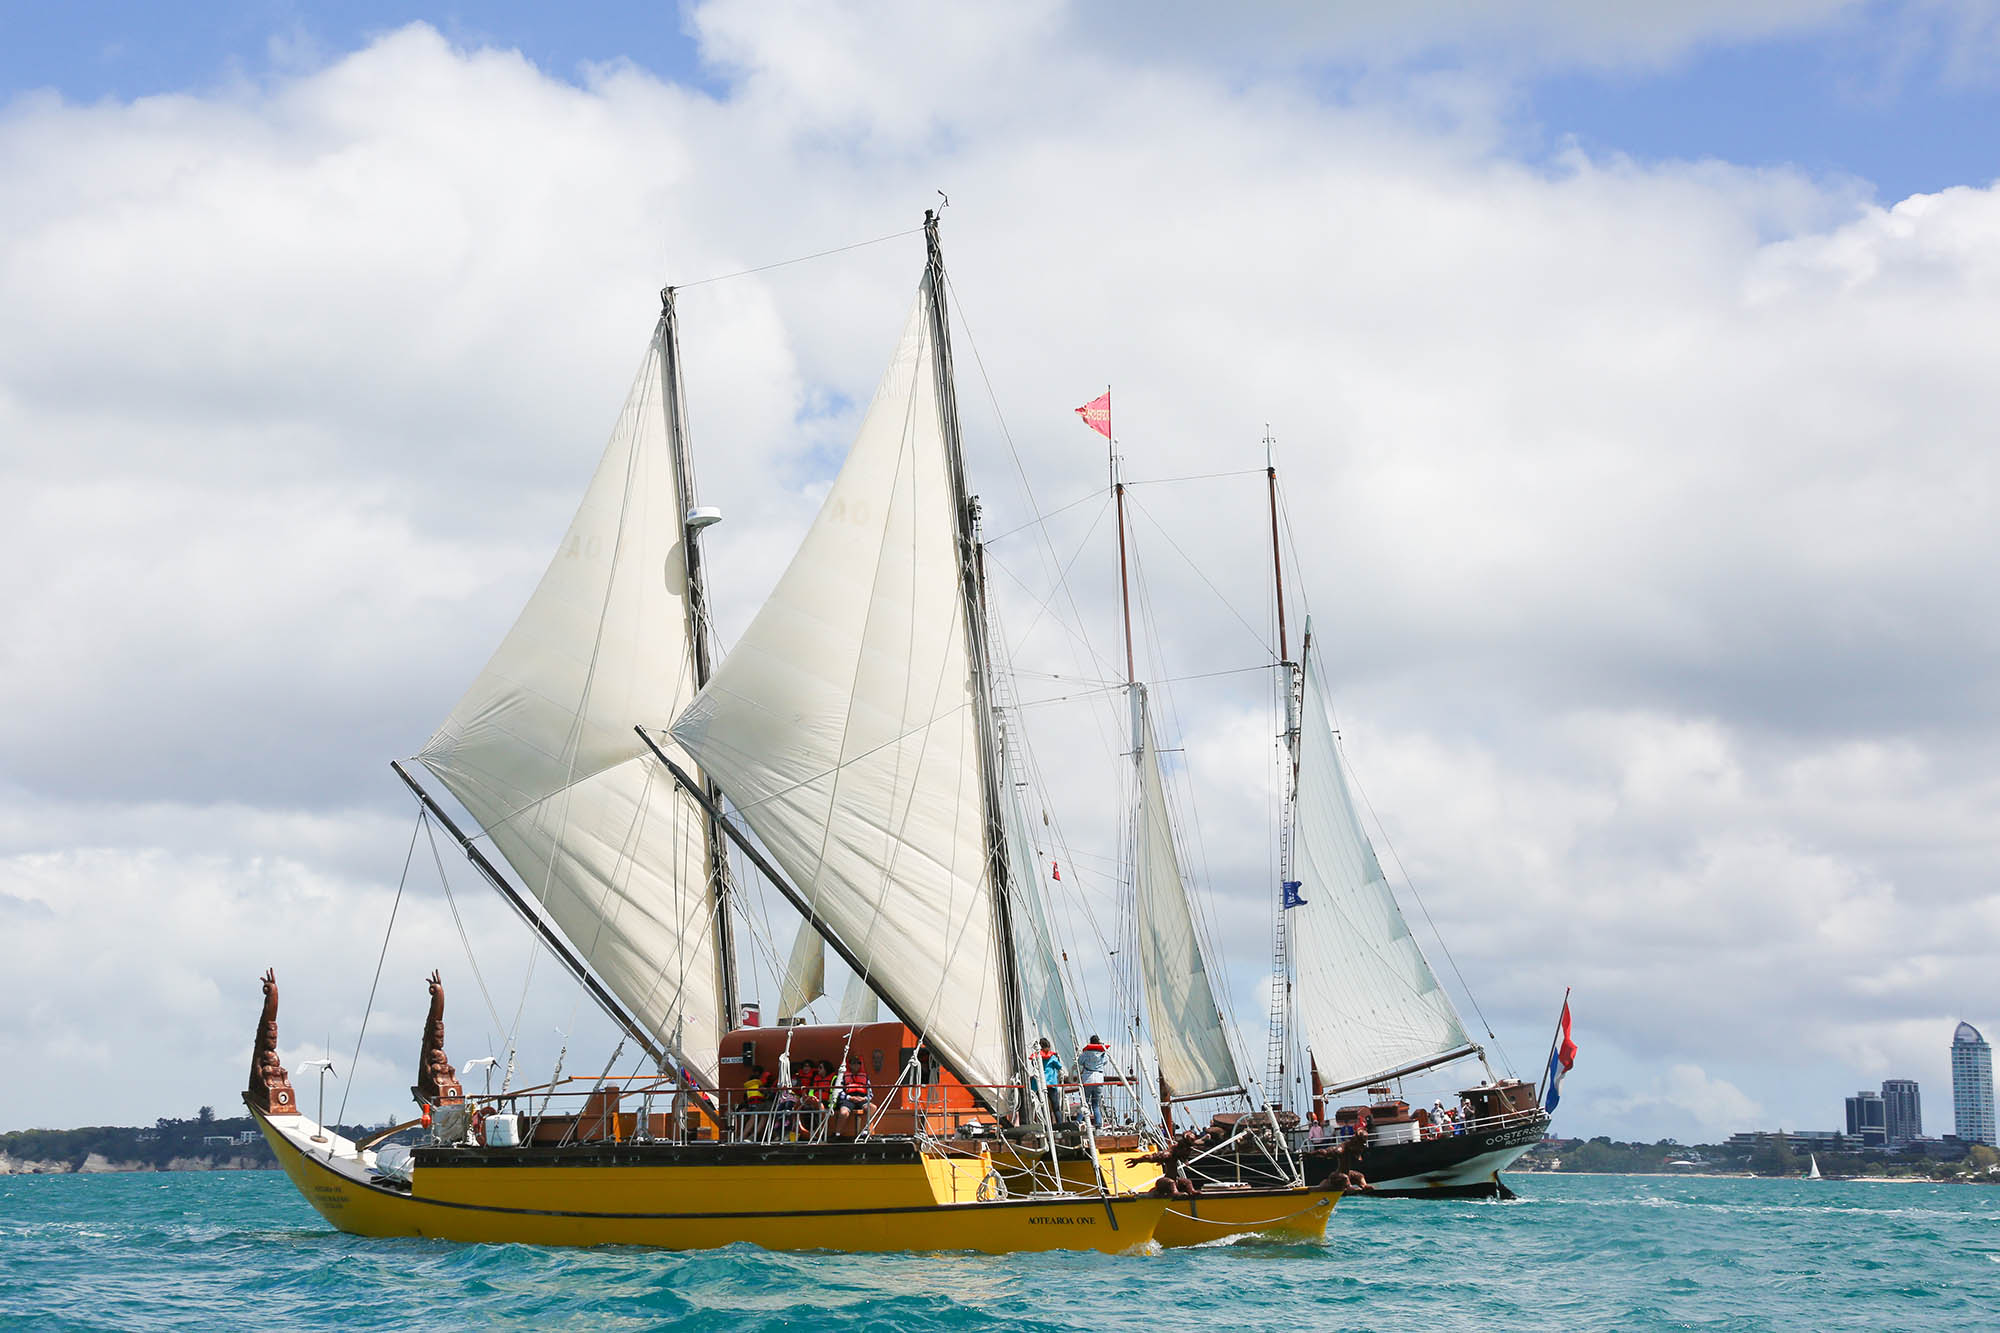 https://rfacdn.nz/maritime/assets/media/waka-te-toki-sailing-vessel-aotearoa-one-a1.jpg